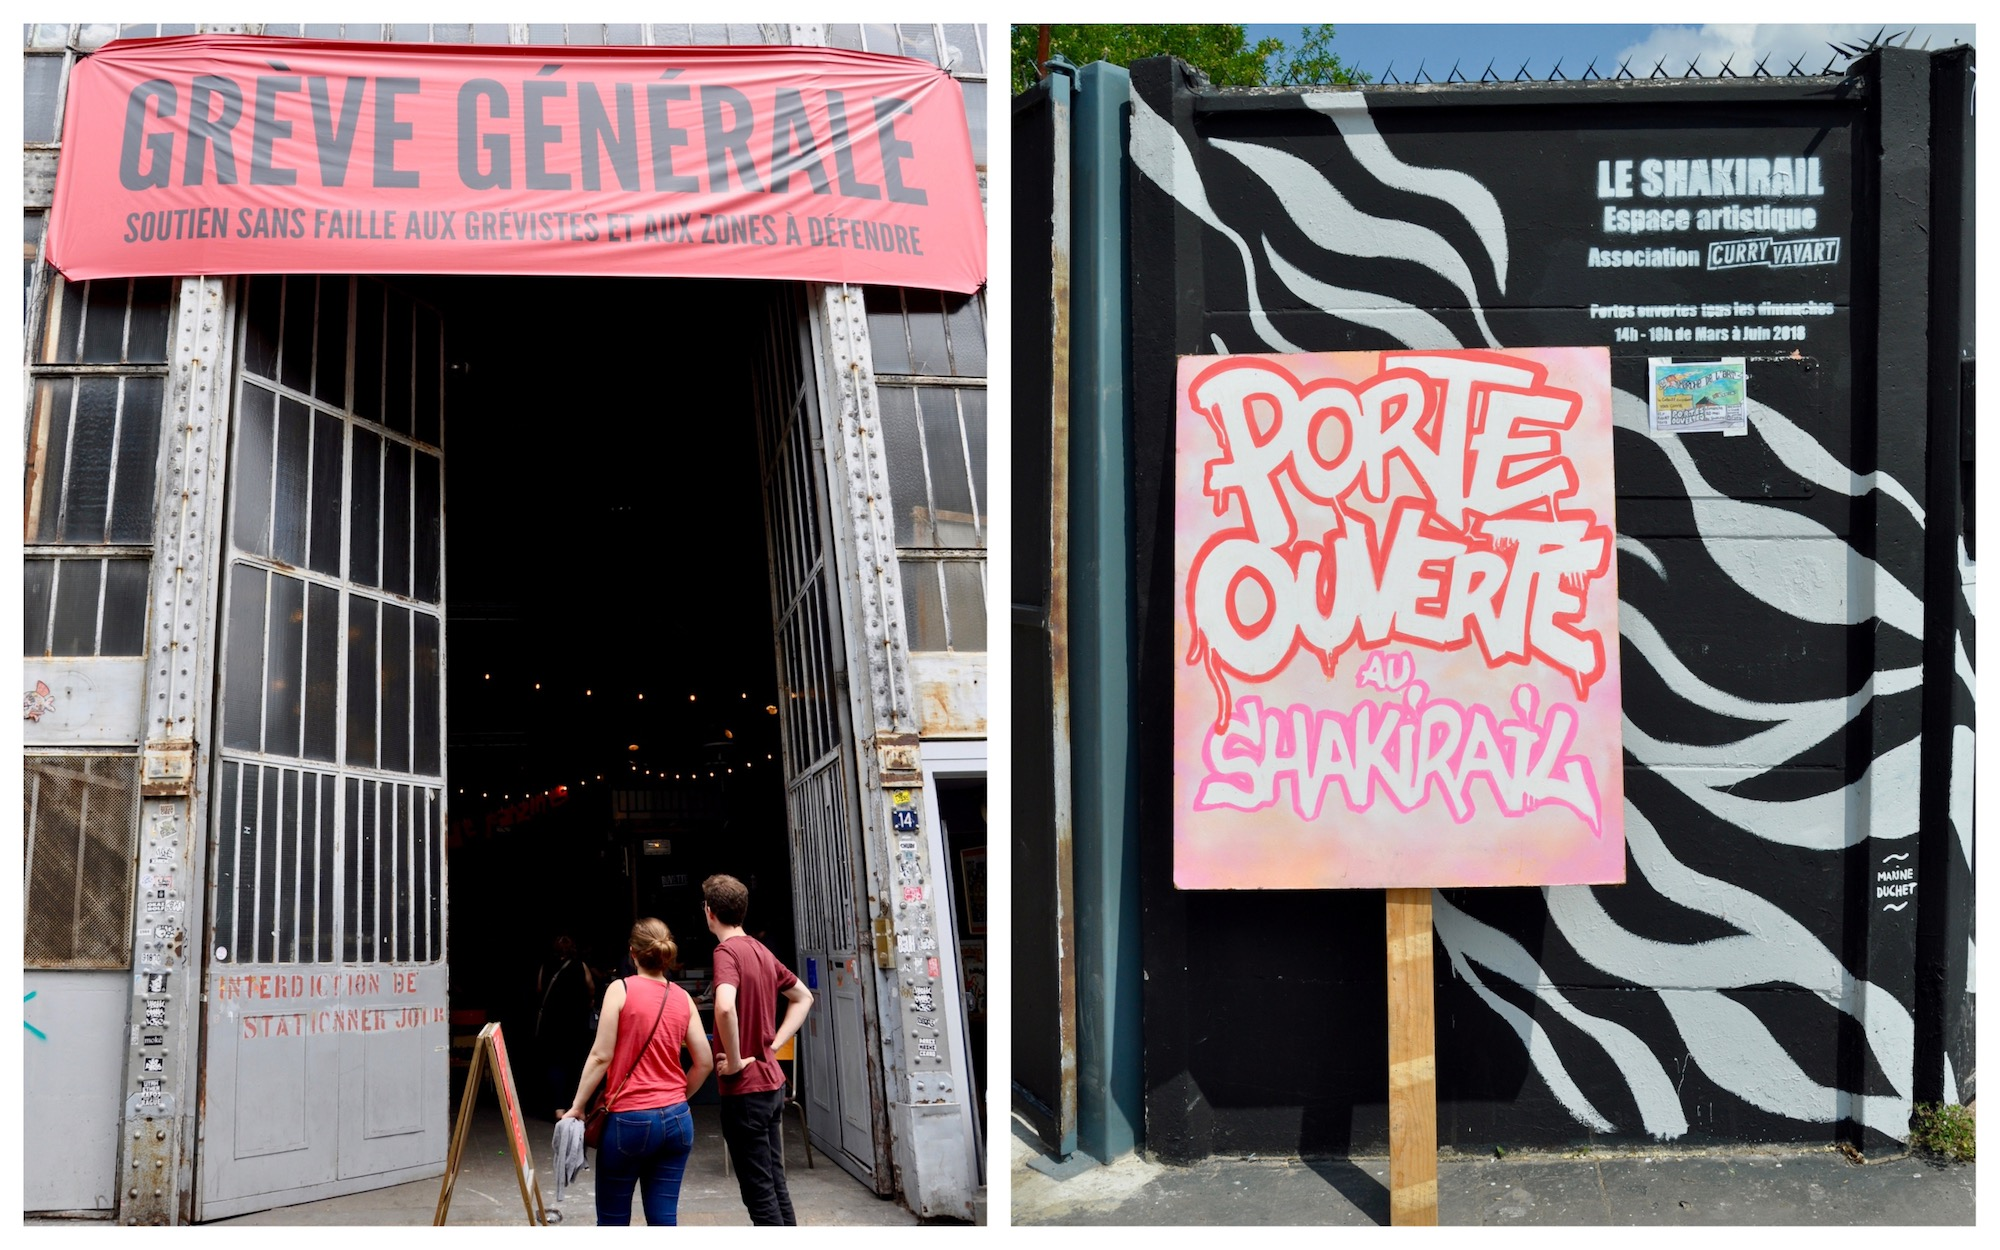 HiP Paris Blog discovers the many artist squats in Paris like La Générale with its open doors (left) and the Skakirail with its inviting street art (right).